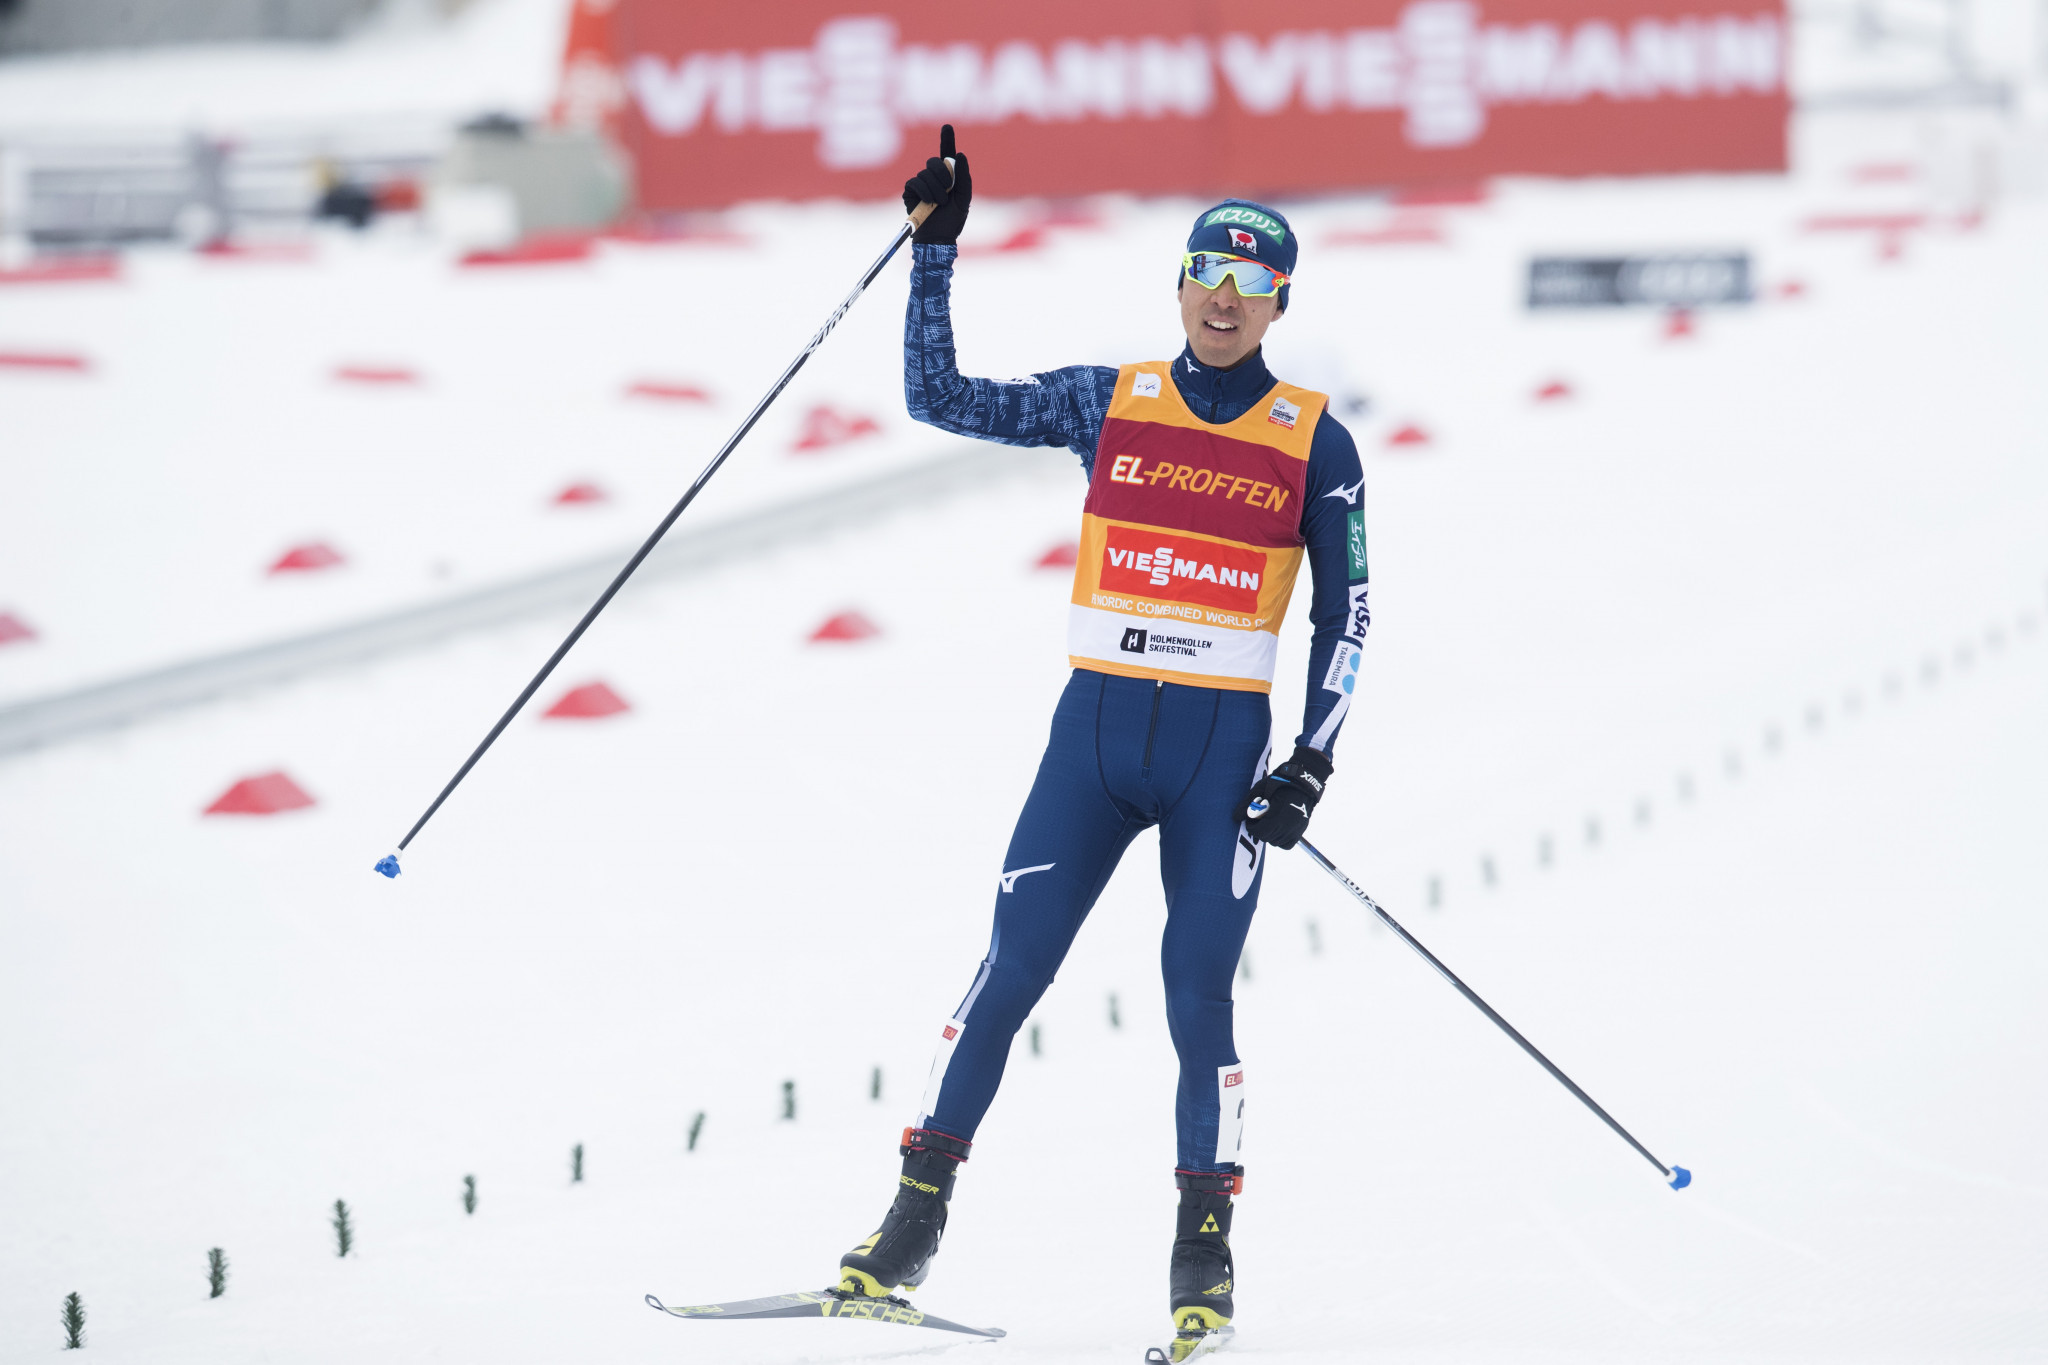 Third place in Klingenthal today earned Japan's Akito Watabe the overall FIS Nordic Combined World Cup title ©Getty Images